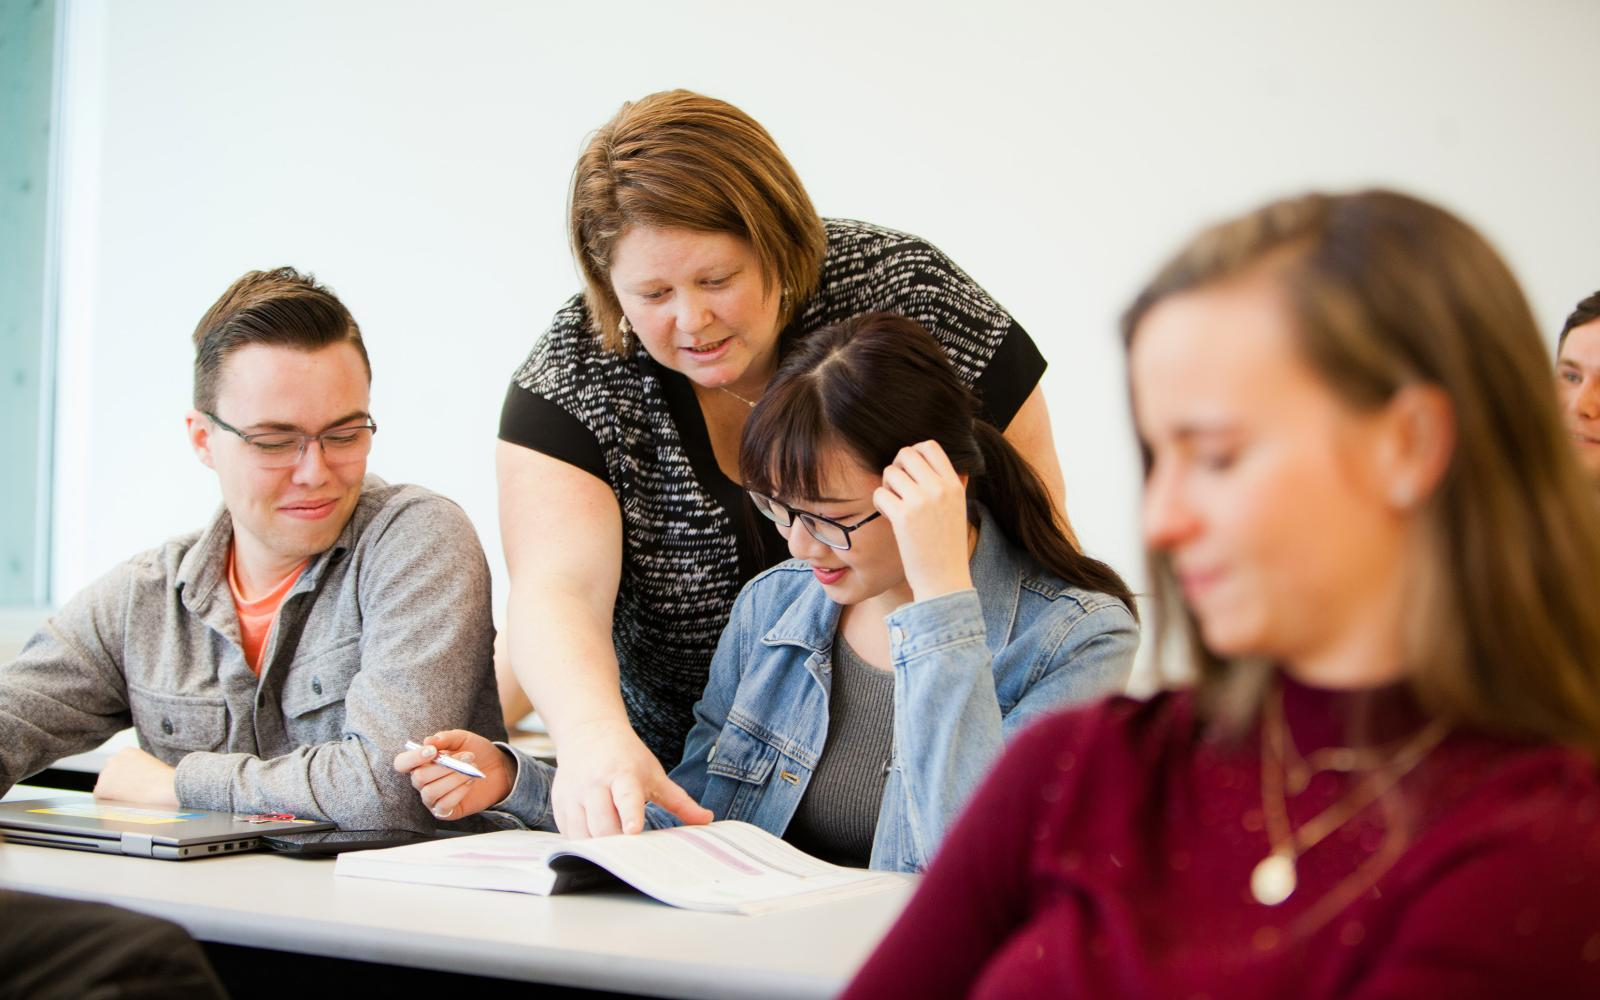 VIU Teaching English as a Second or Foreign Language Certification Program (TESL/TEFL)